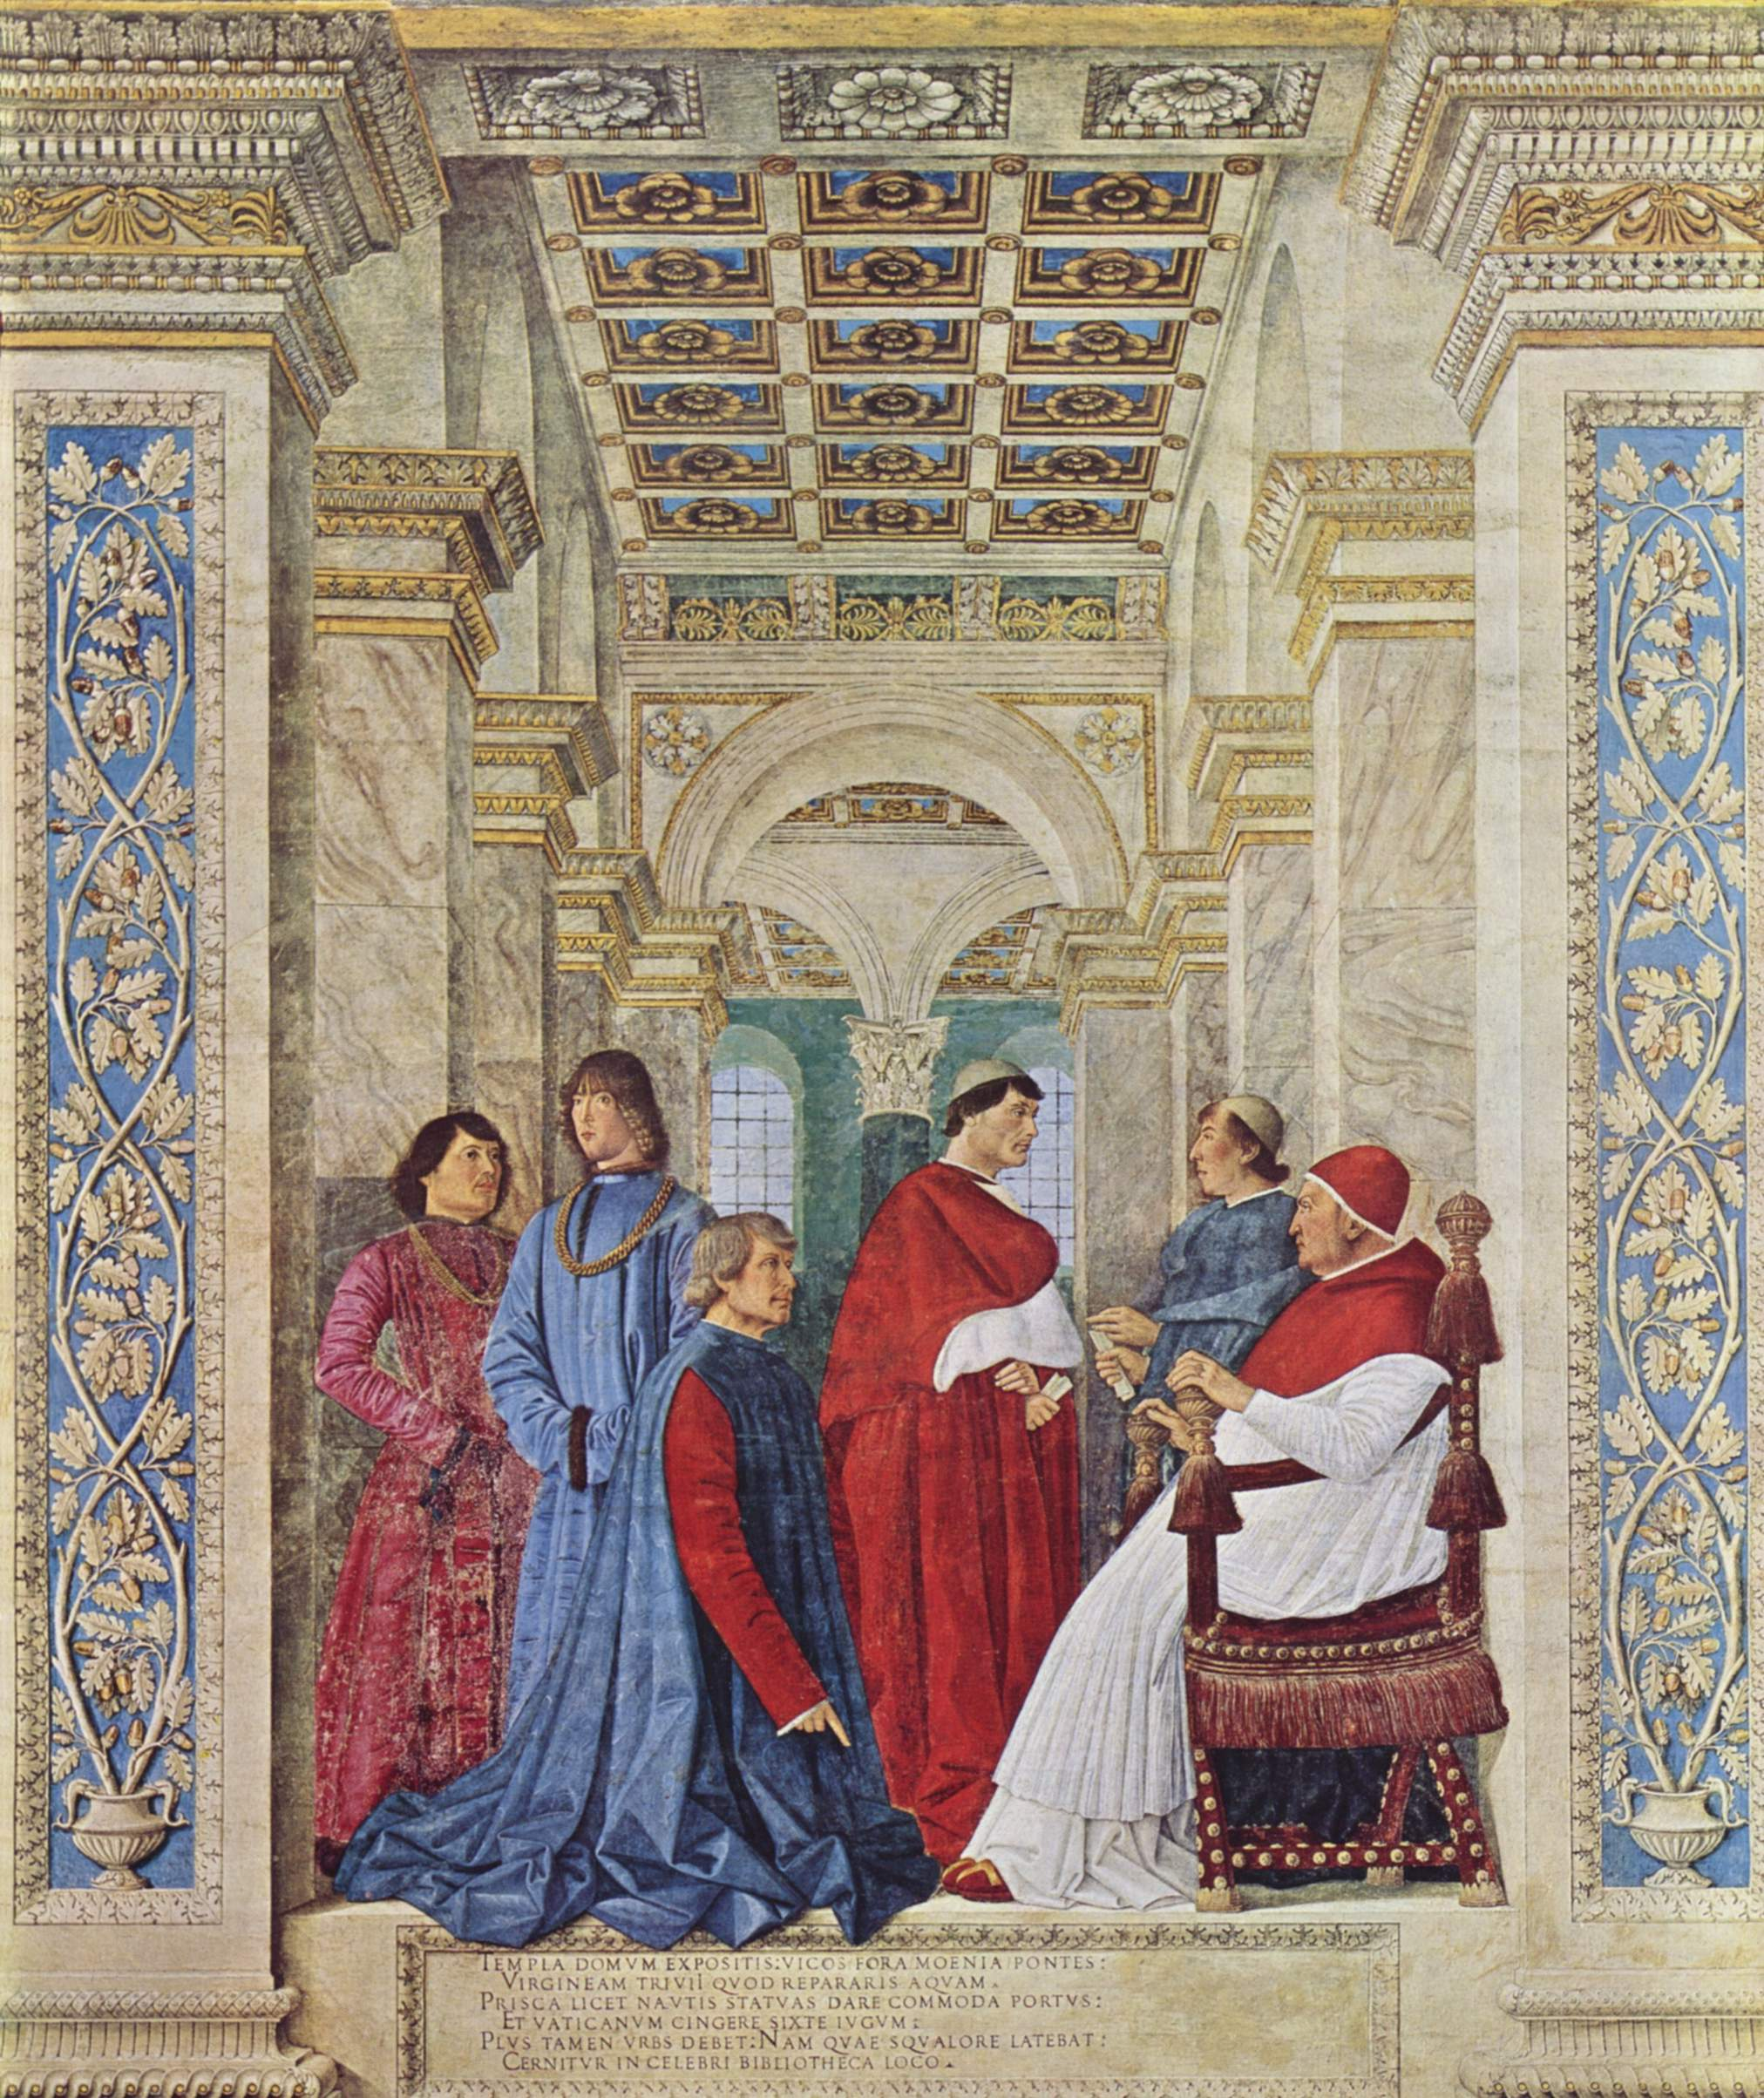 renaissance ideas portrayed in italian art essay Art trends in the renaissance renaissance art essay italian renaissance art offered the world a new way to view human reason and development.